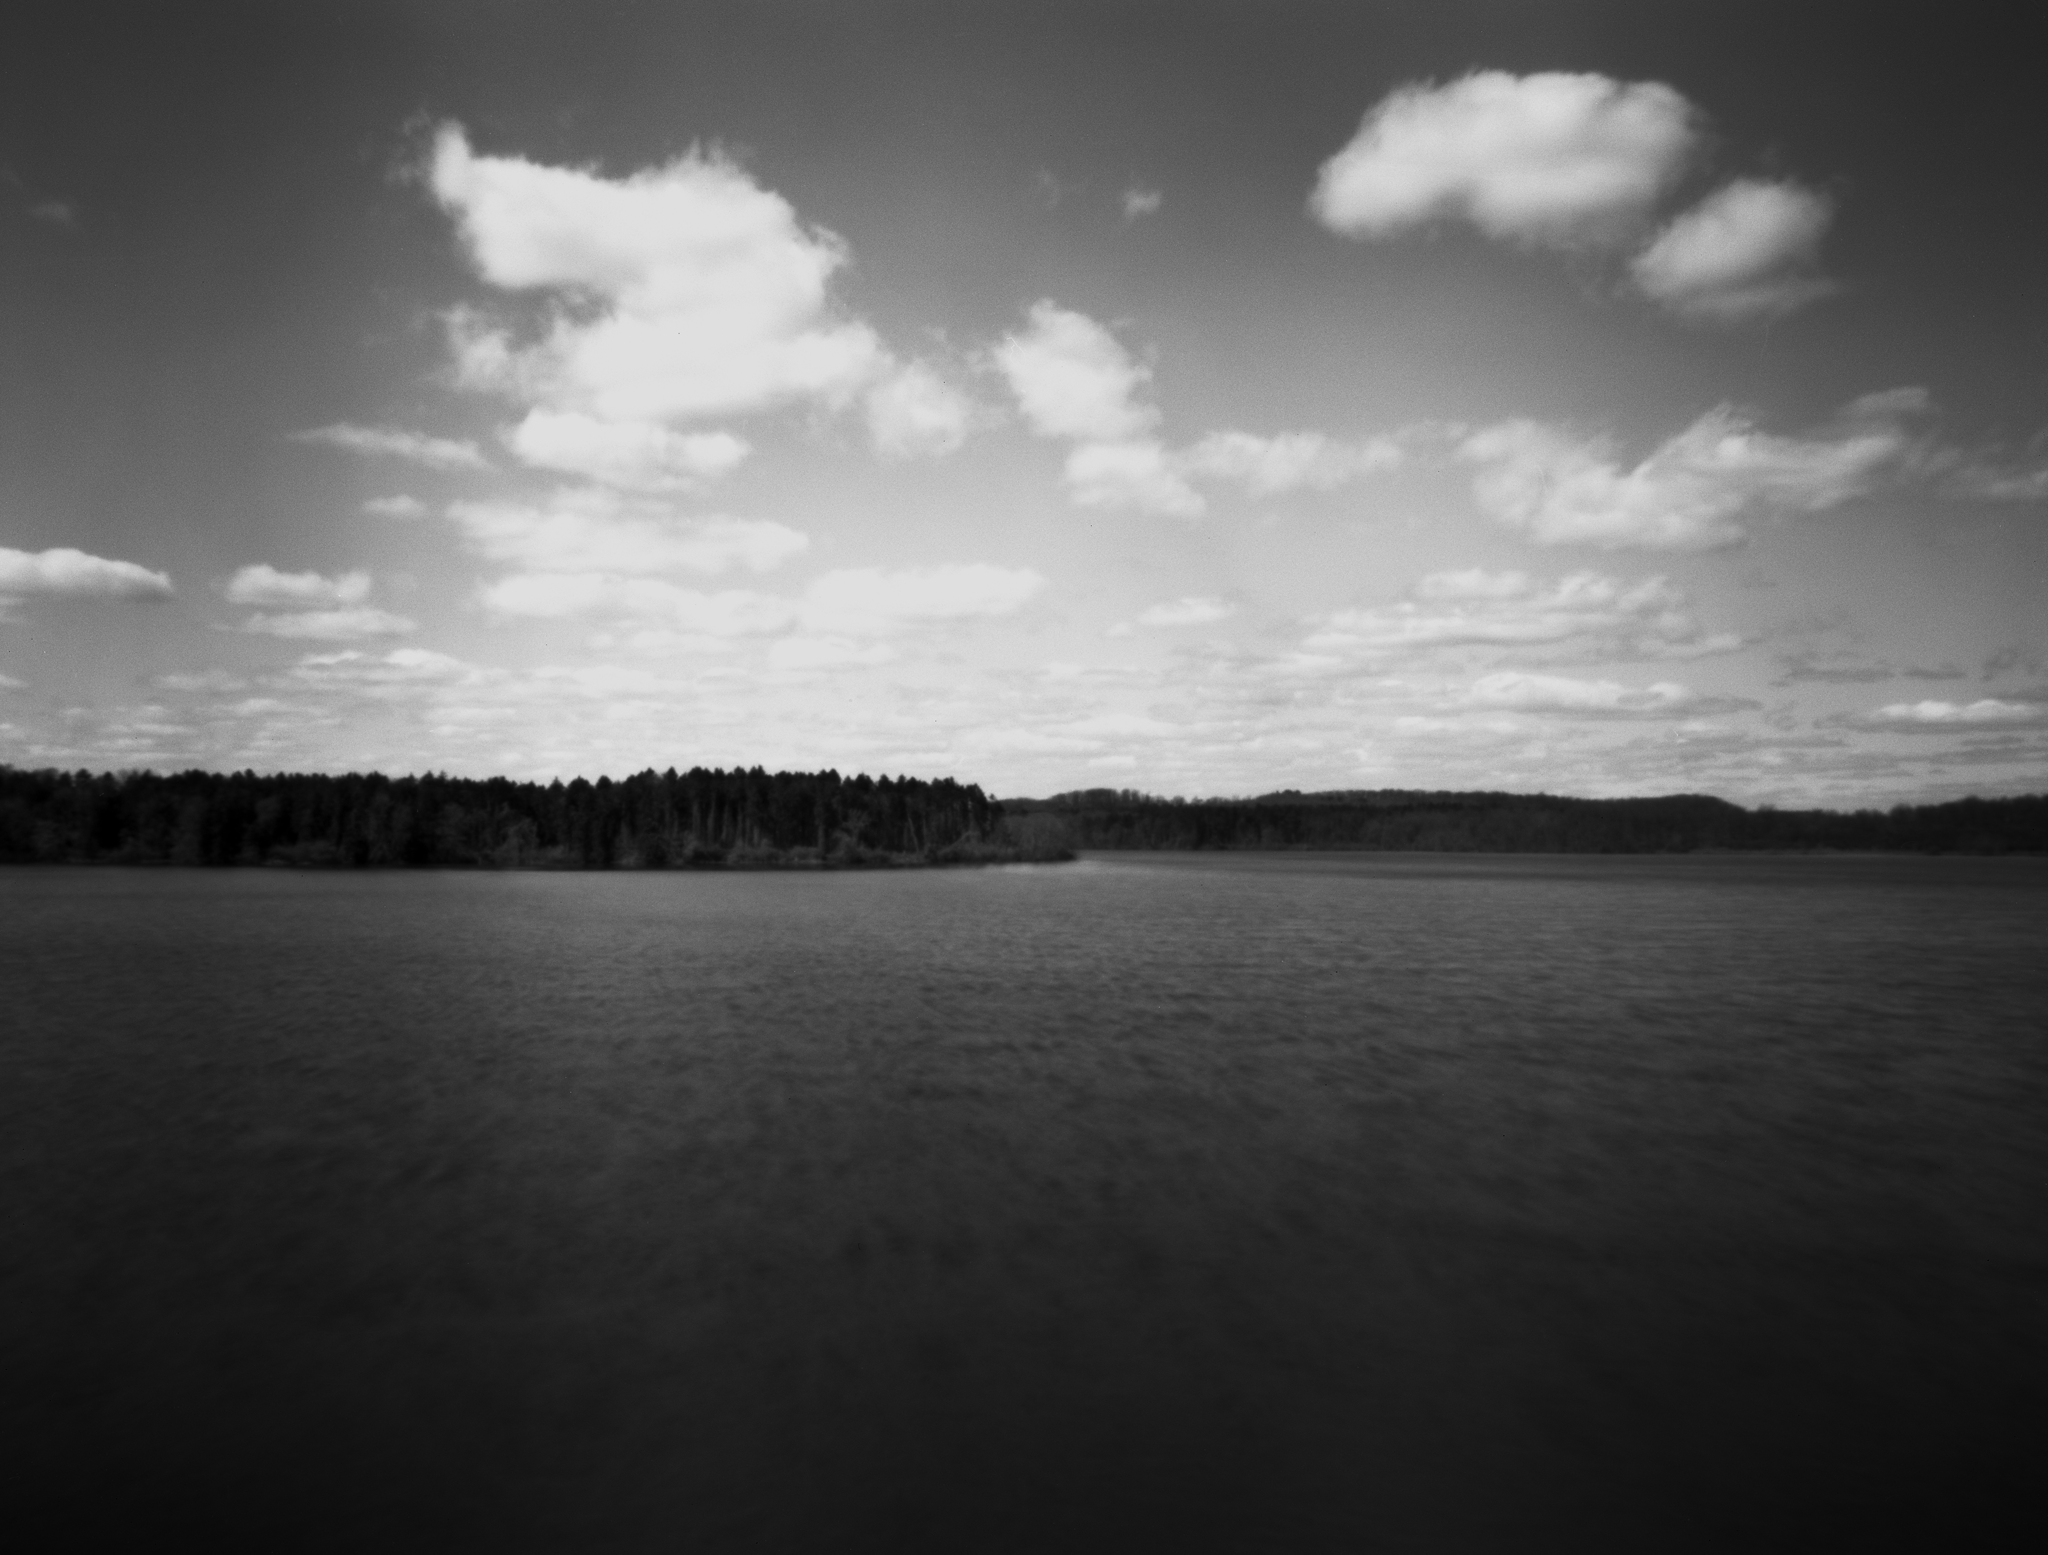 4x5_for_365_project_0118_Lake_Ontelaunee_pinhole.png